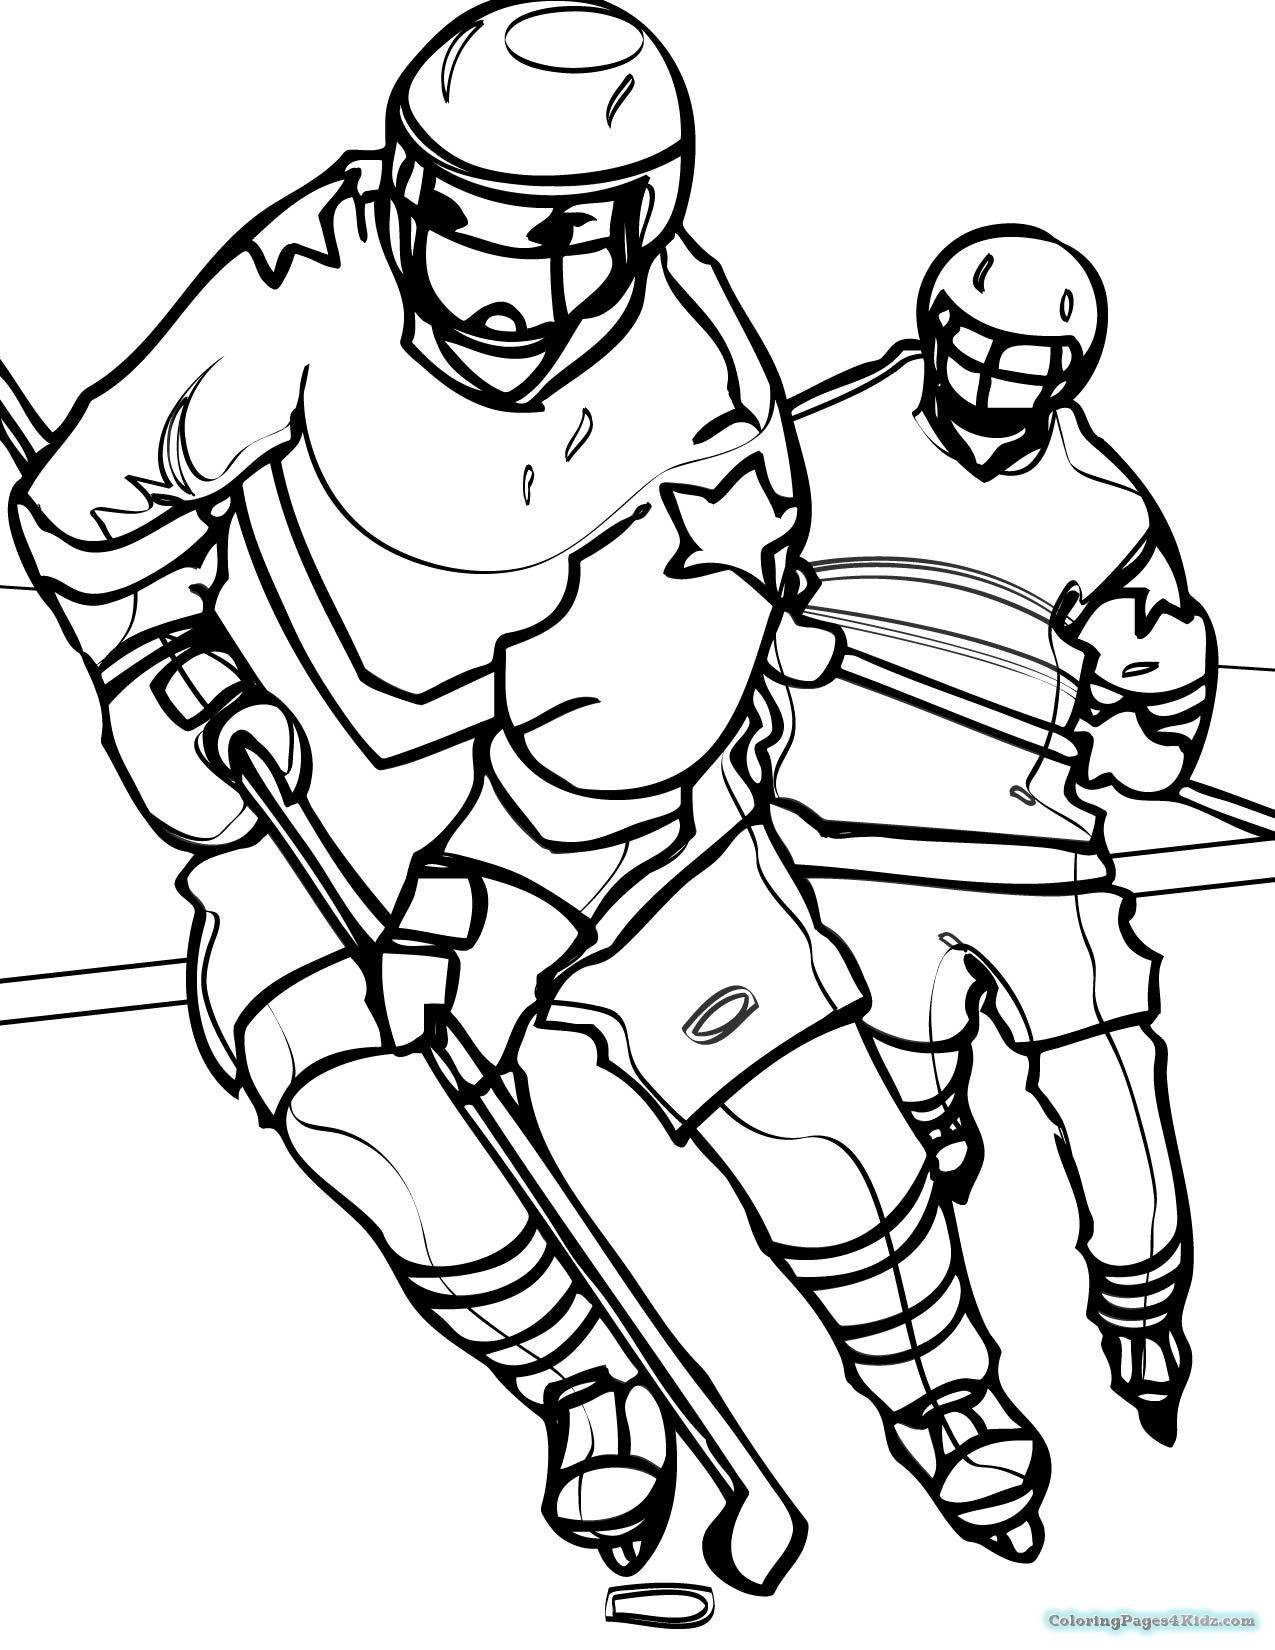 1275x1650 Sports Coloring Pages For Boys Kids Best